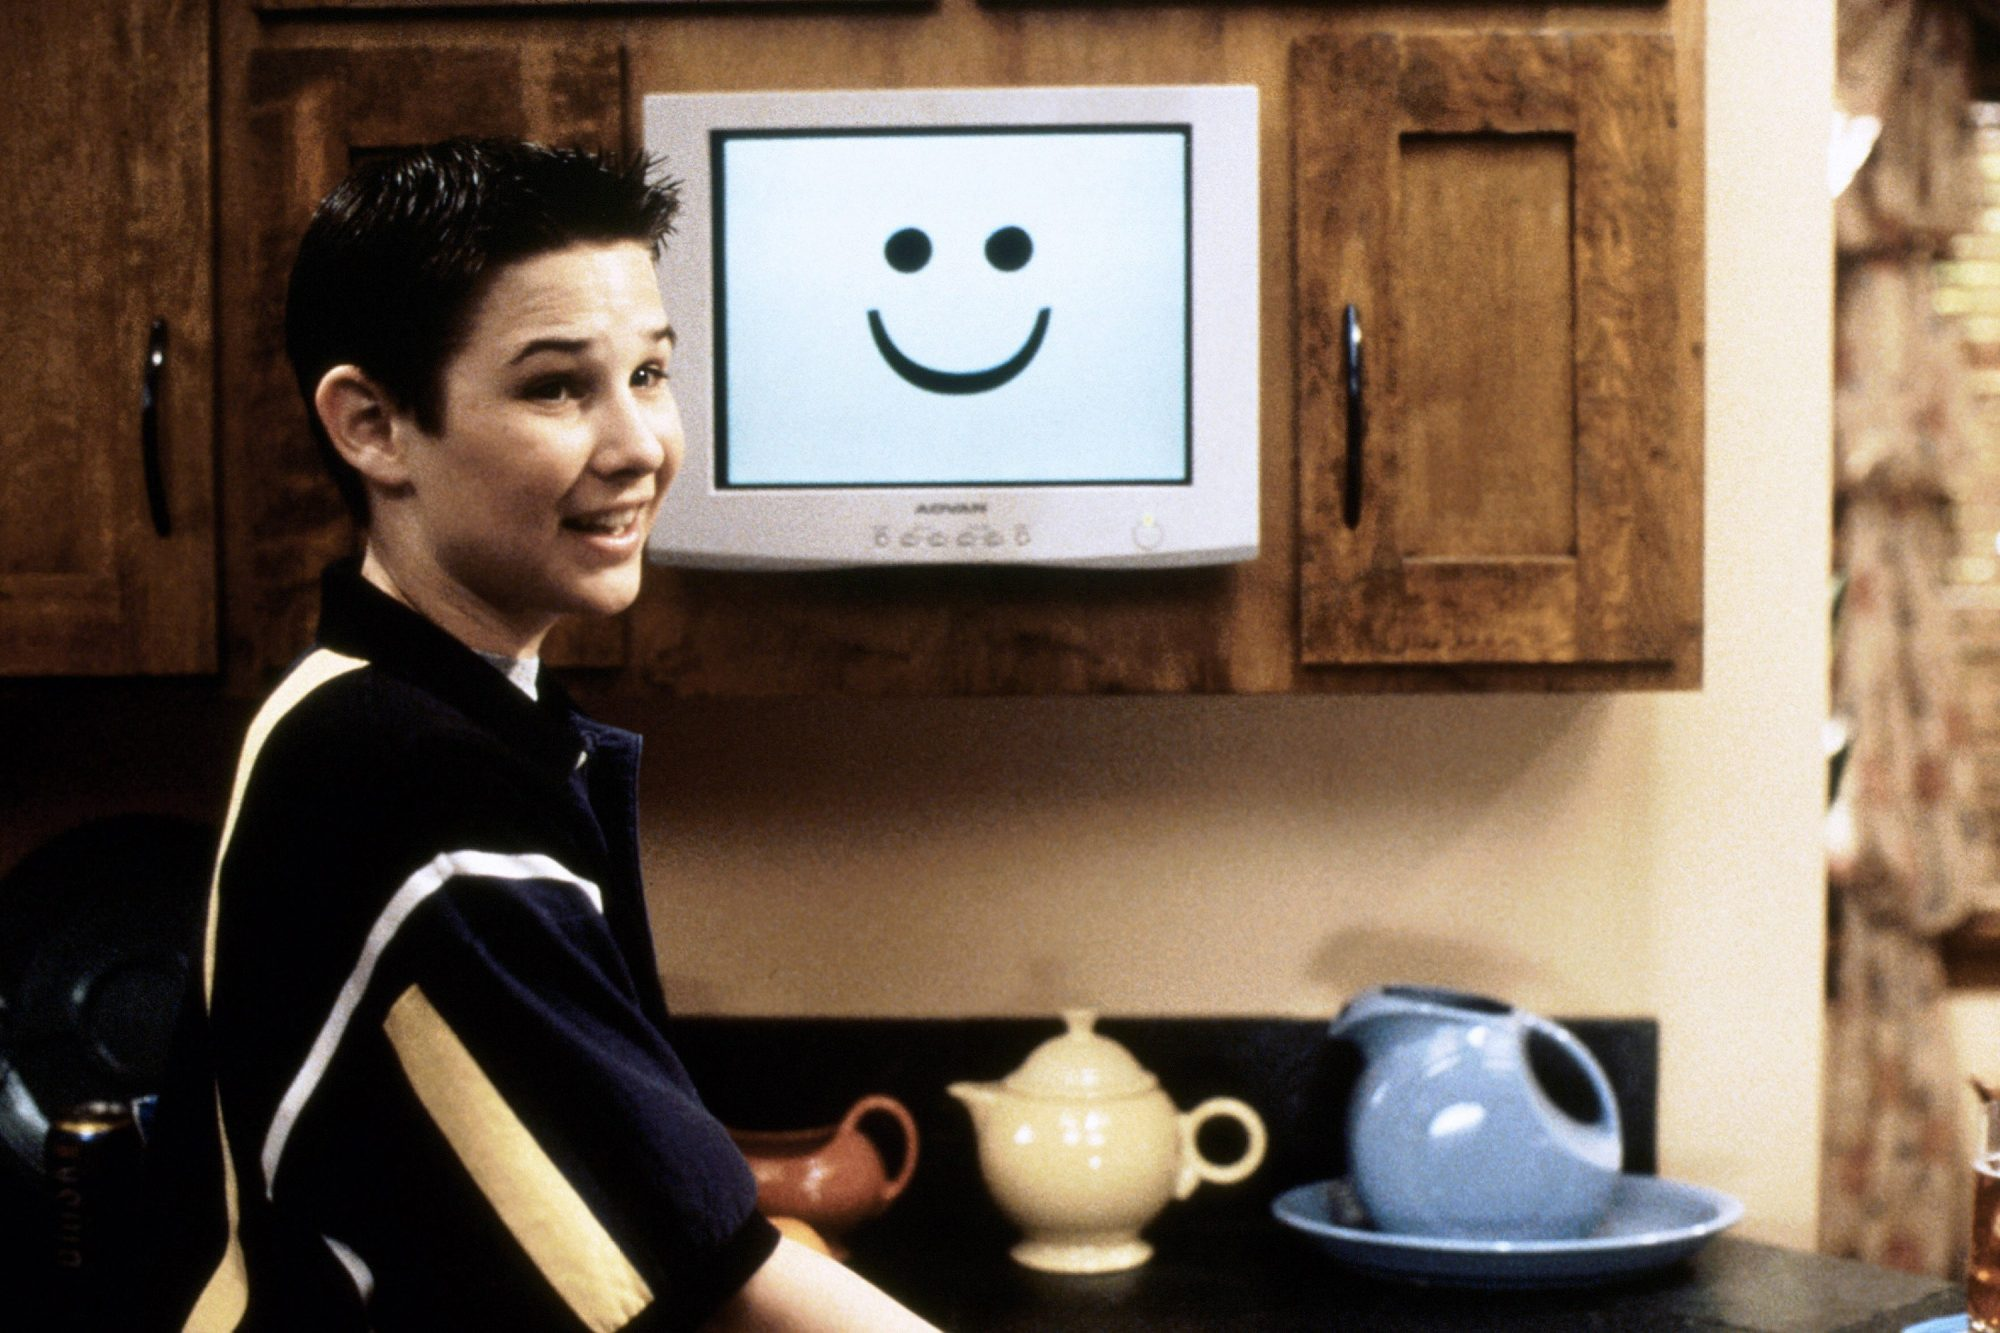 Image from Smart House